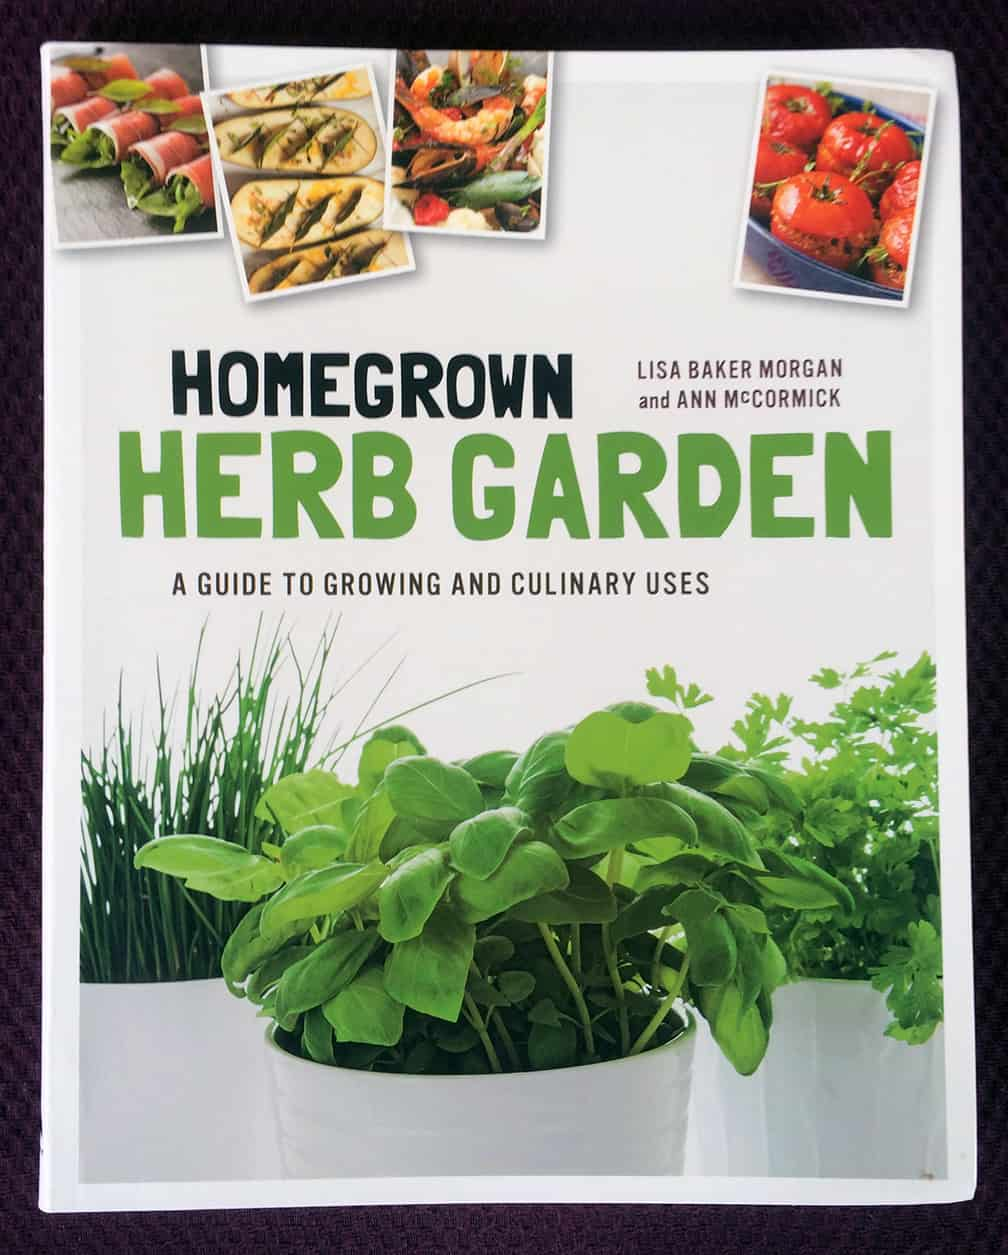 A fun read that will have you heading for your garden and kitchen, smiling all the way.